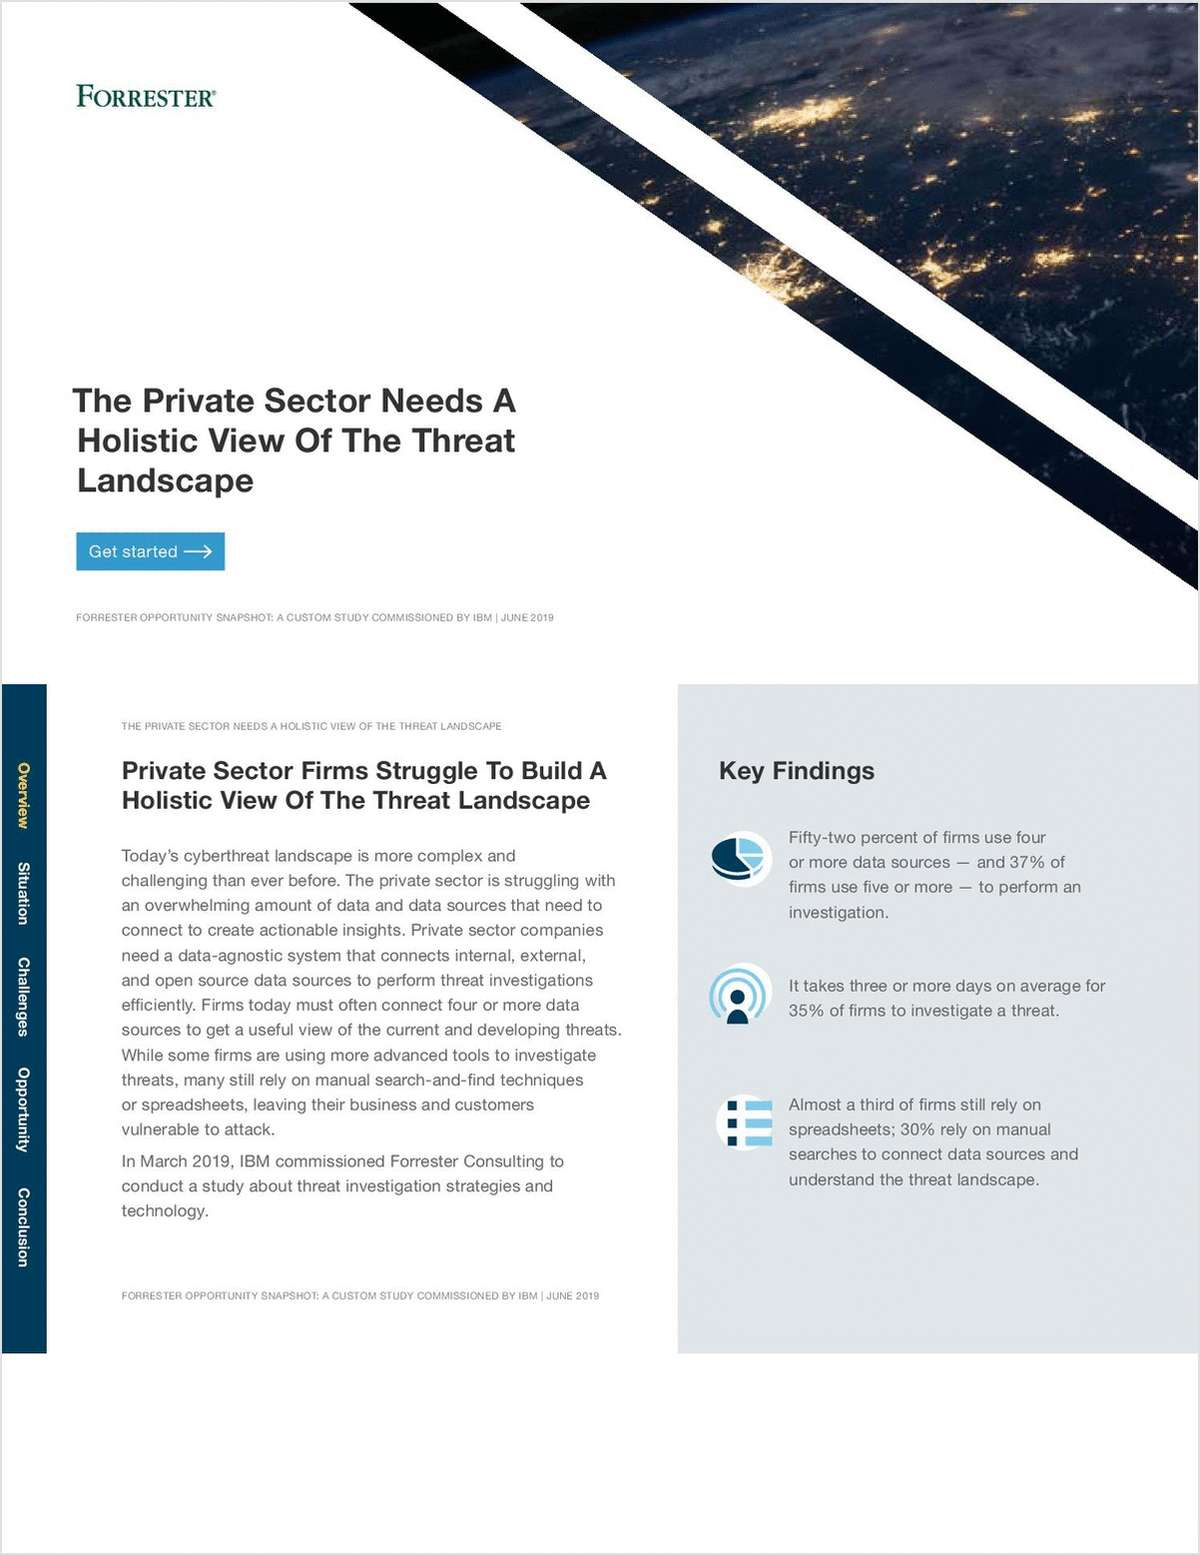 The Private Sector Needs A Holistic View Of The Threat Landscape